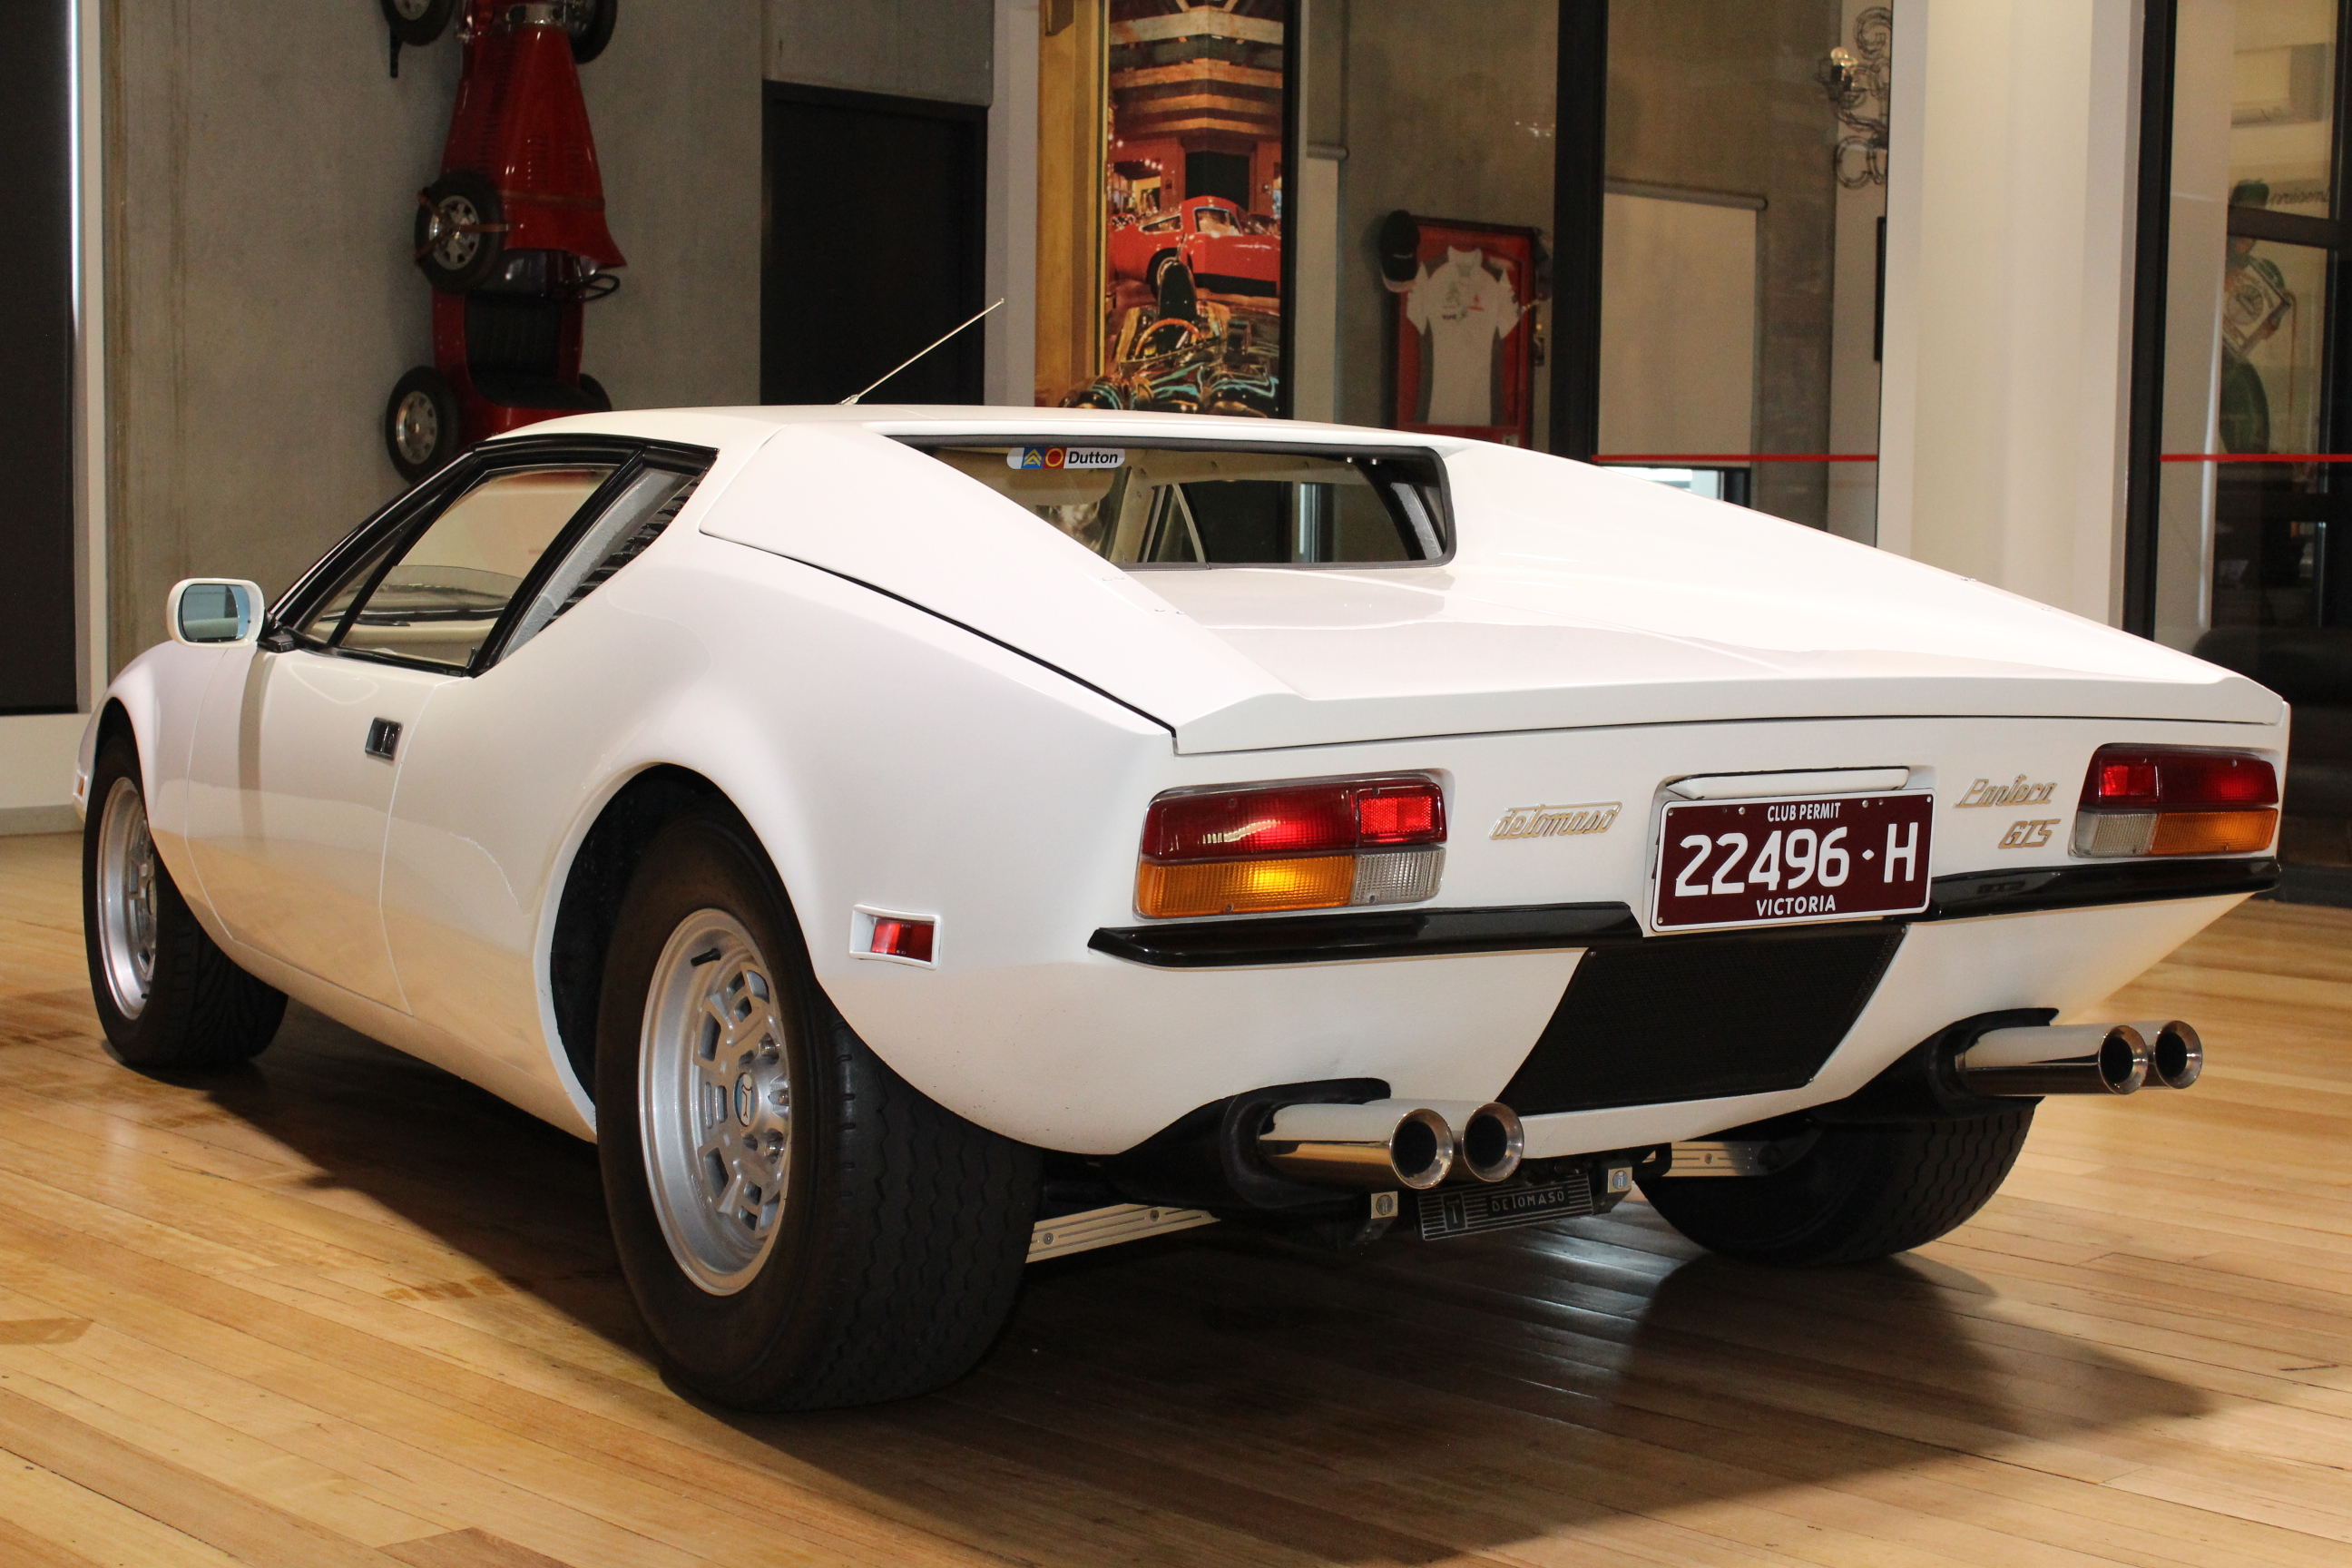 1974 De Tomaso Pantera GTS Coupe For Sale